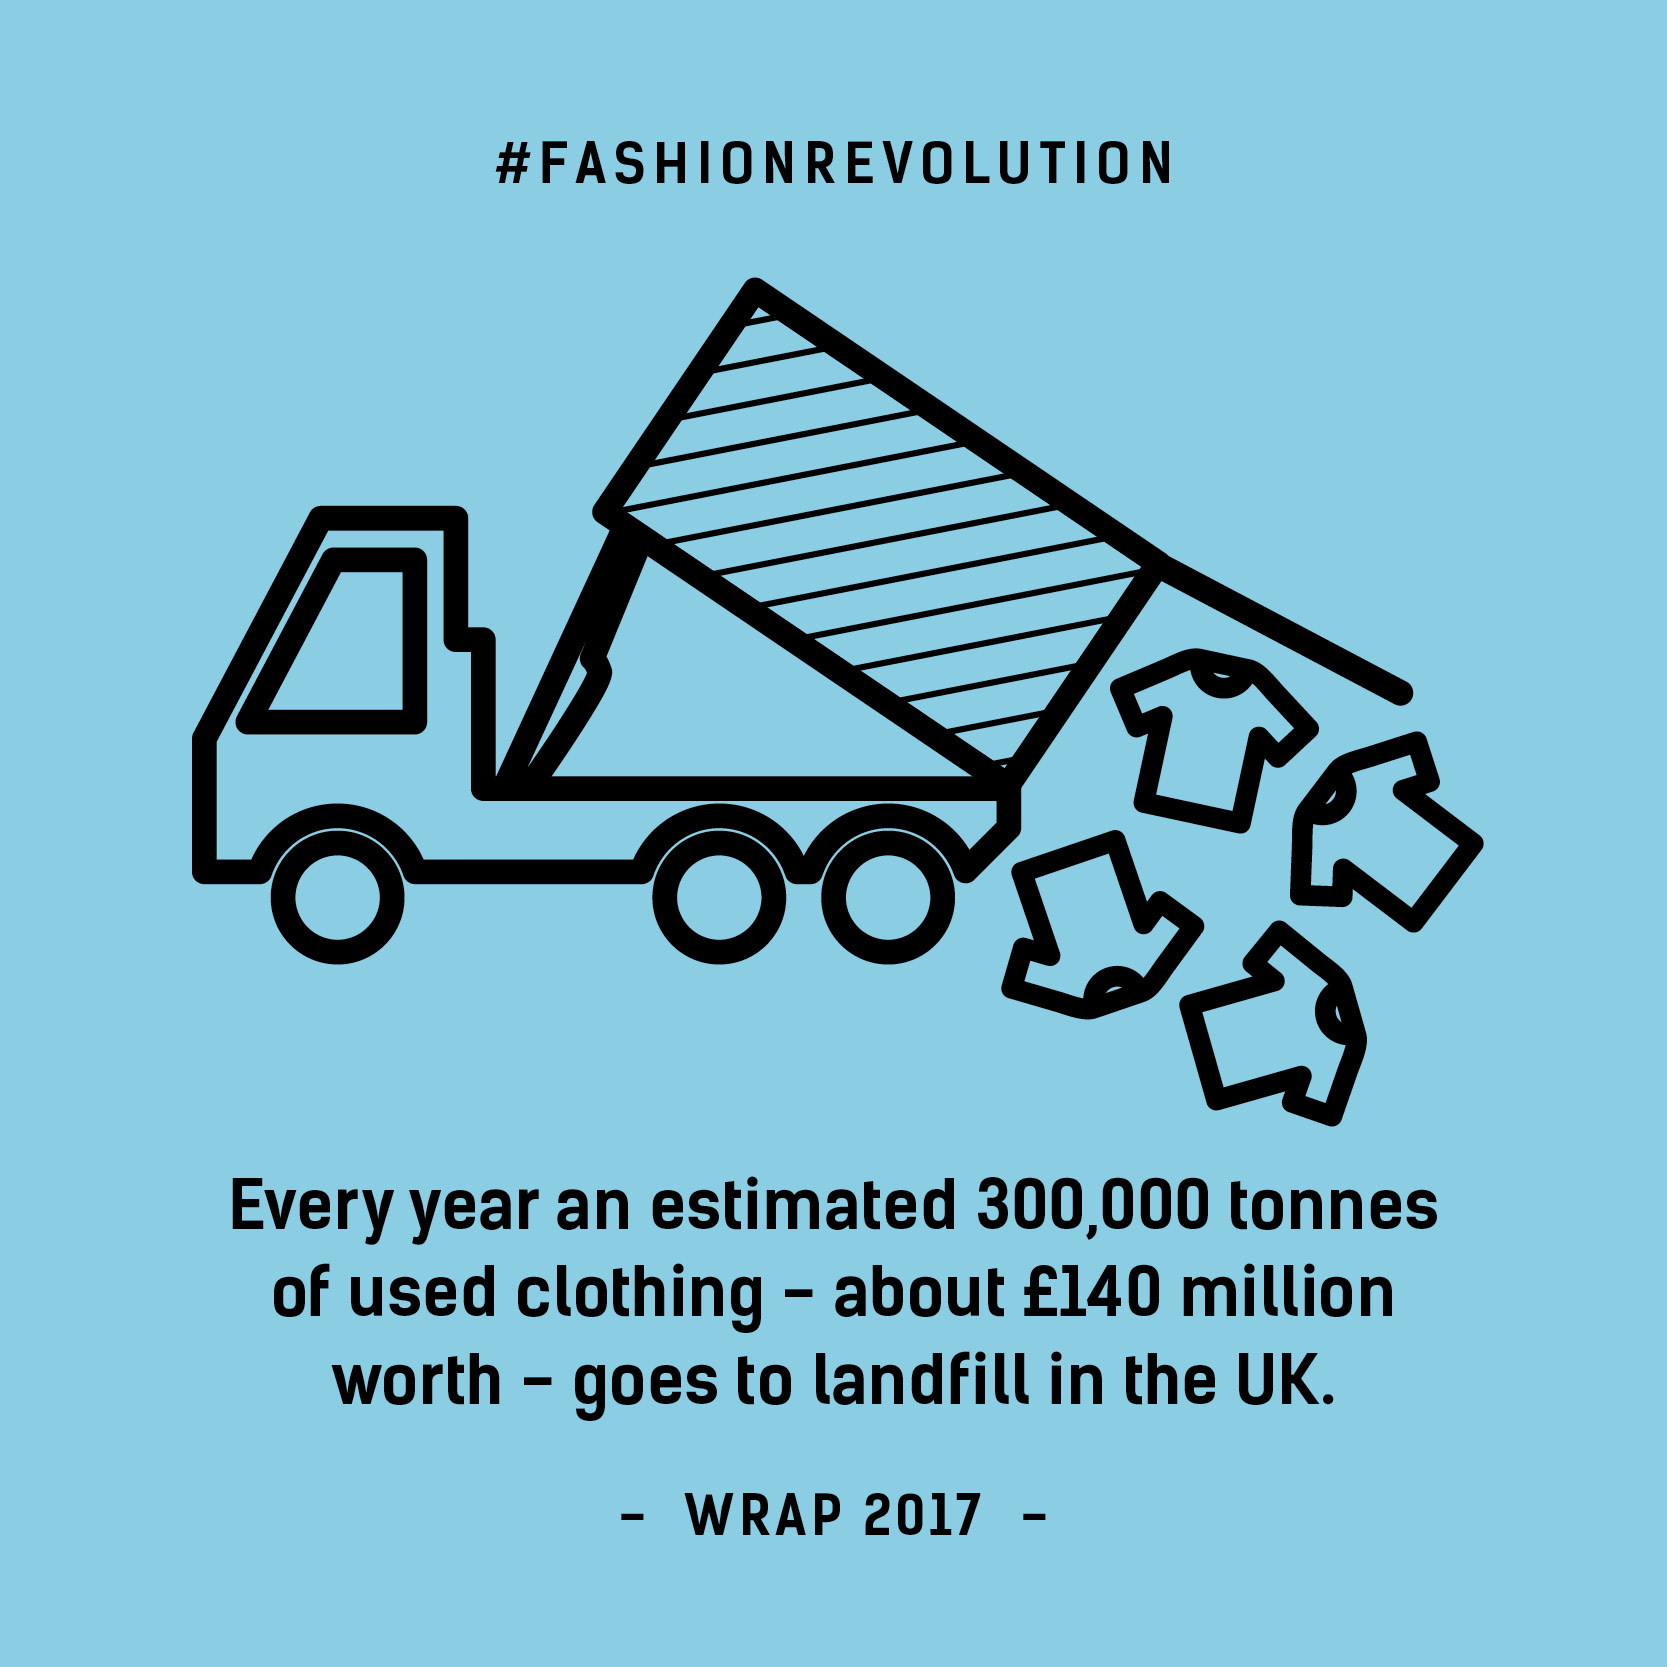 The fashion industry is leaving behind huge amounts of waste